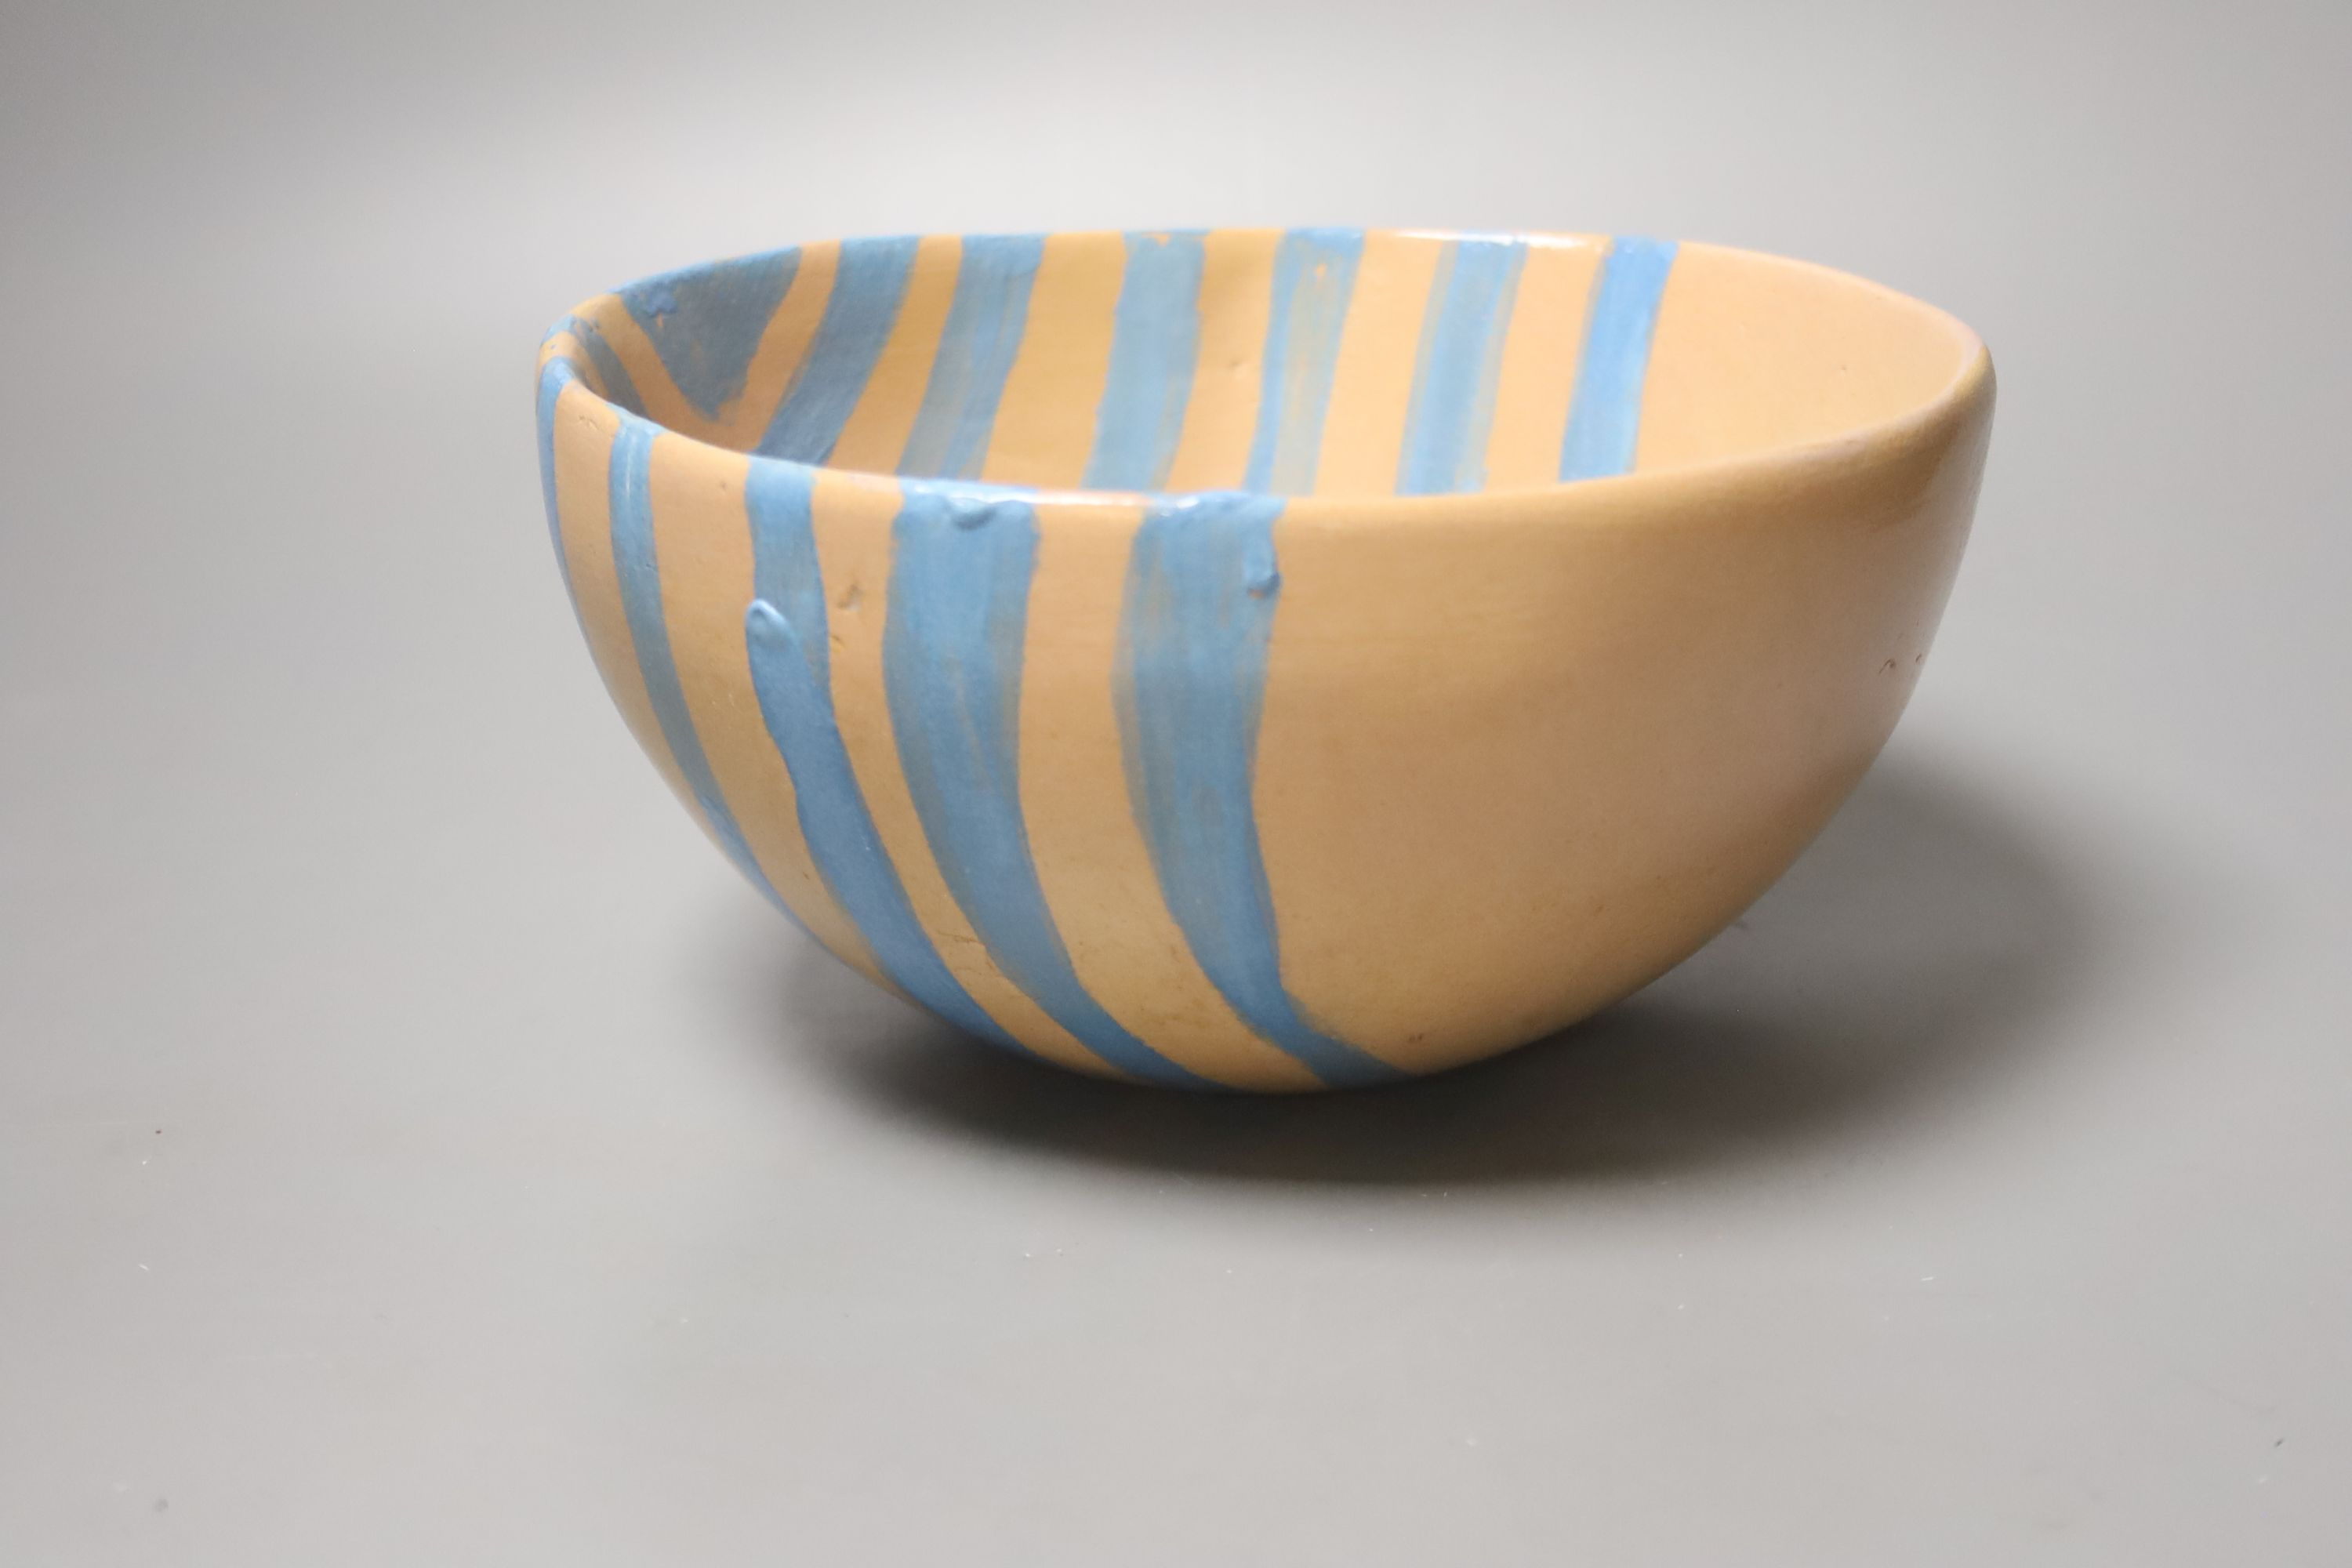 Quentin Bell. A hand painted earthenware bowl, 10cm high - Image 2 of 3